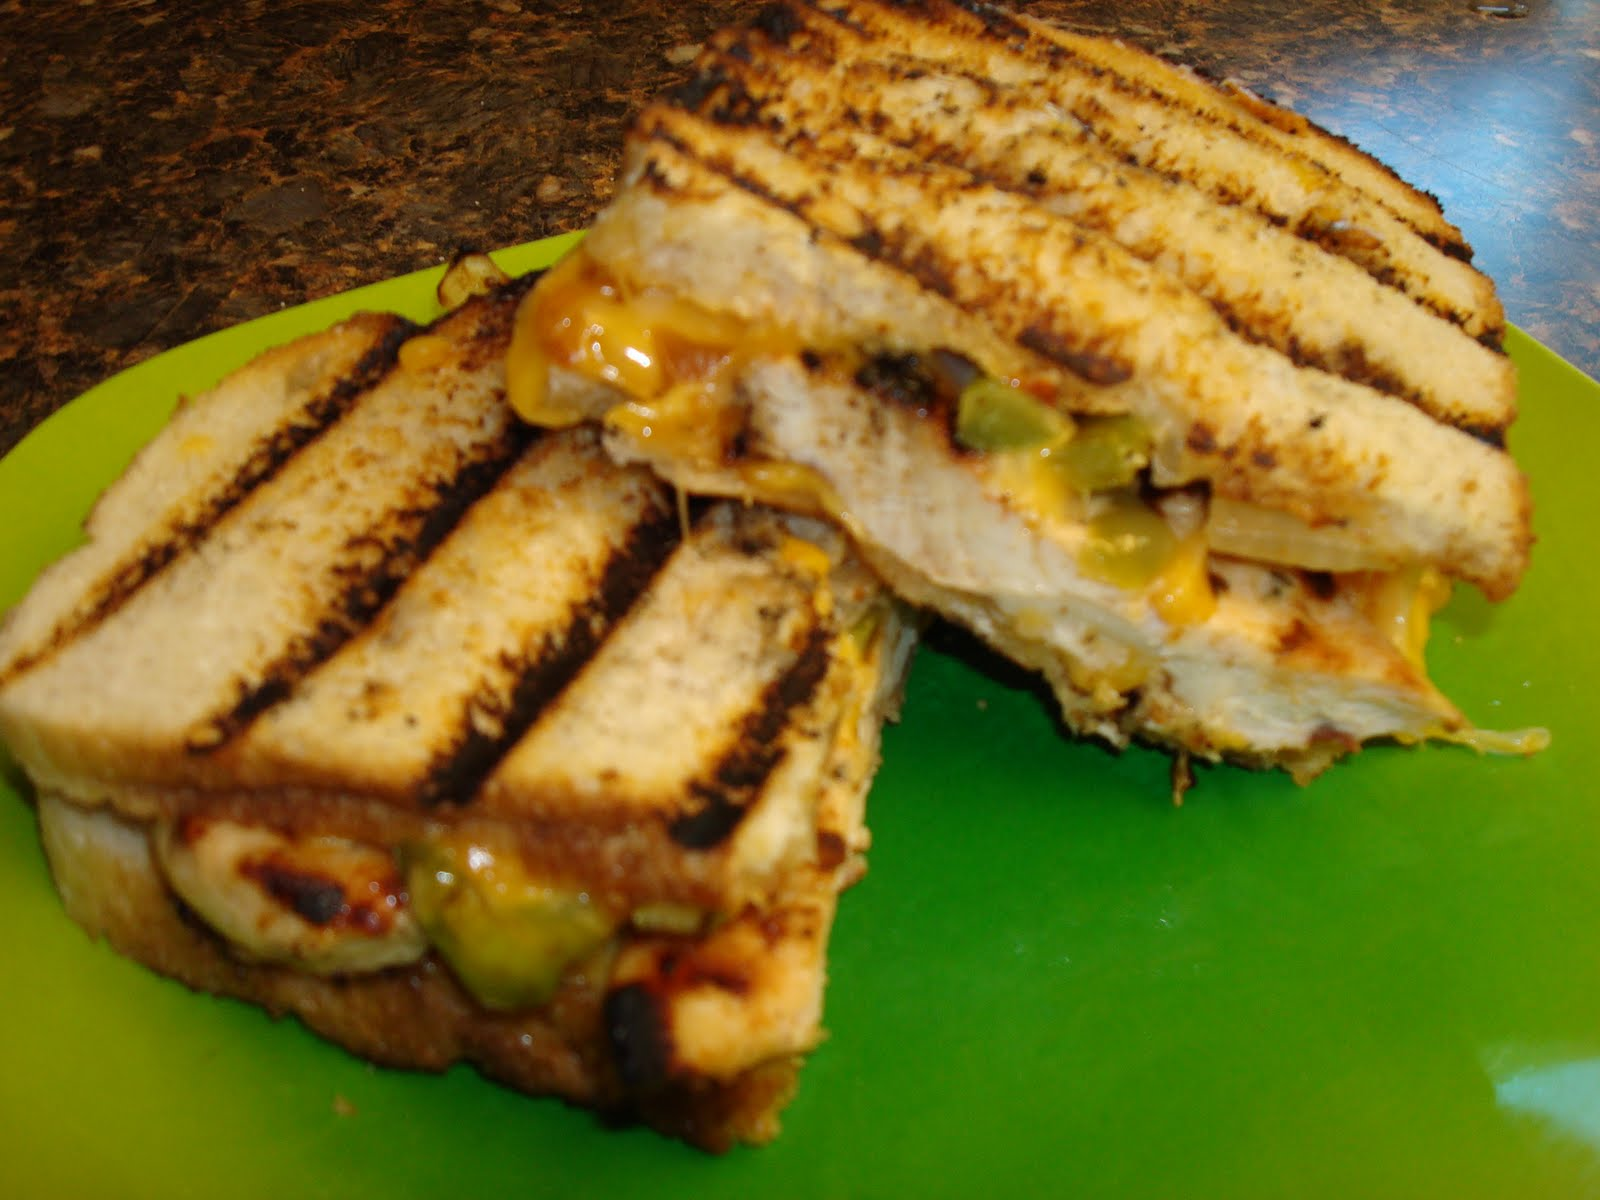 Panini Sandwich Recipes | Search Results | All Simply Cooking Blog ...